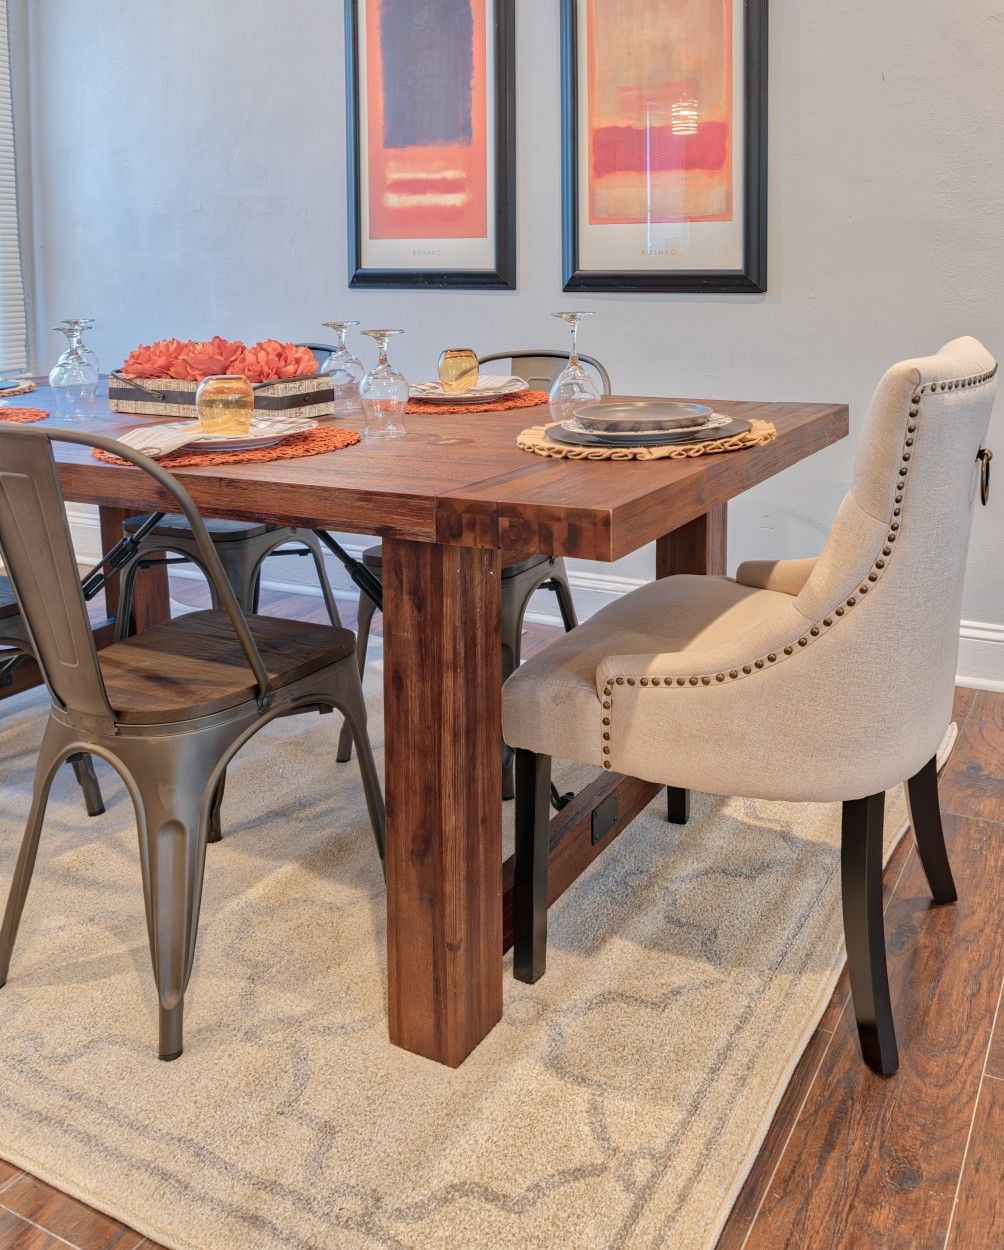 Home Staging Dining Room Table: Pin By KJ Design On Edmondson Avenue Staging